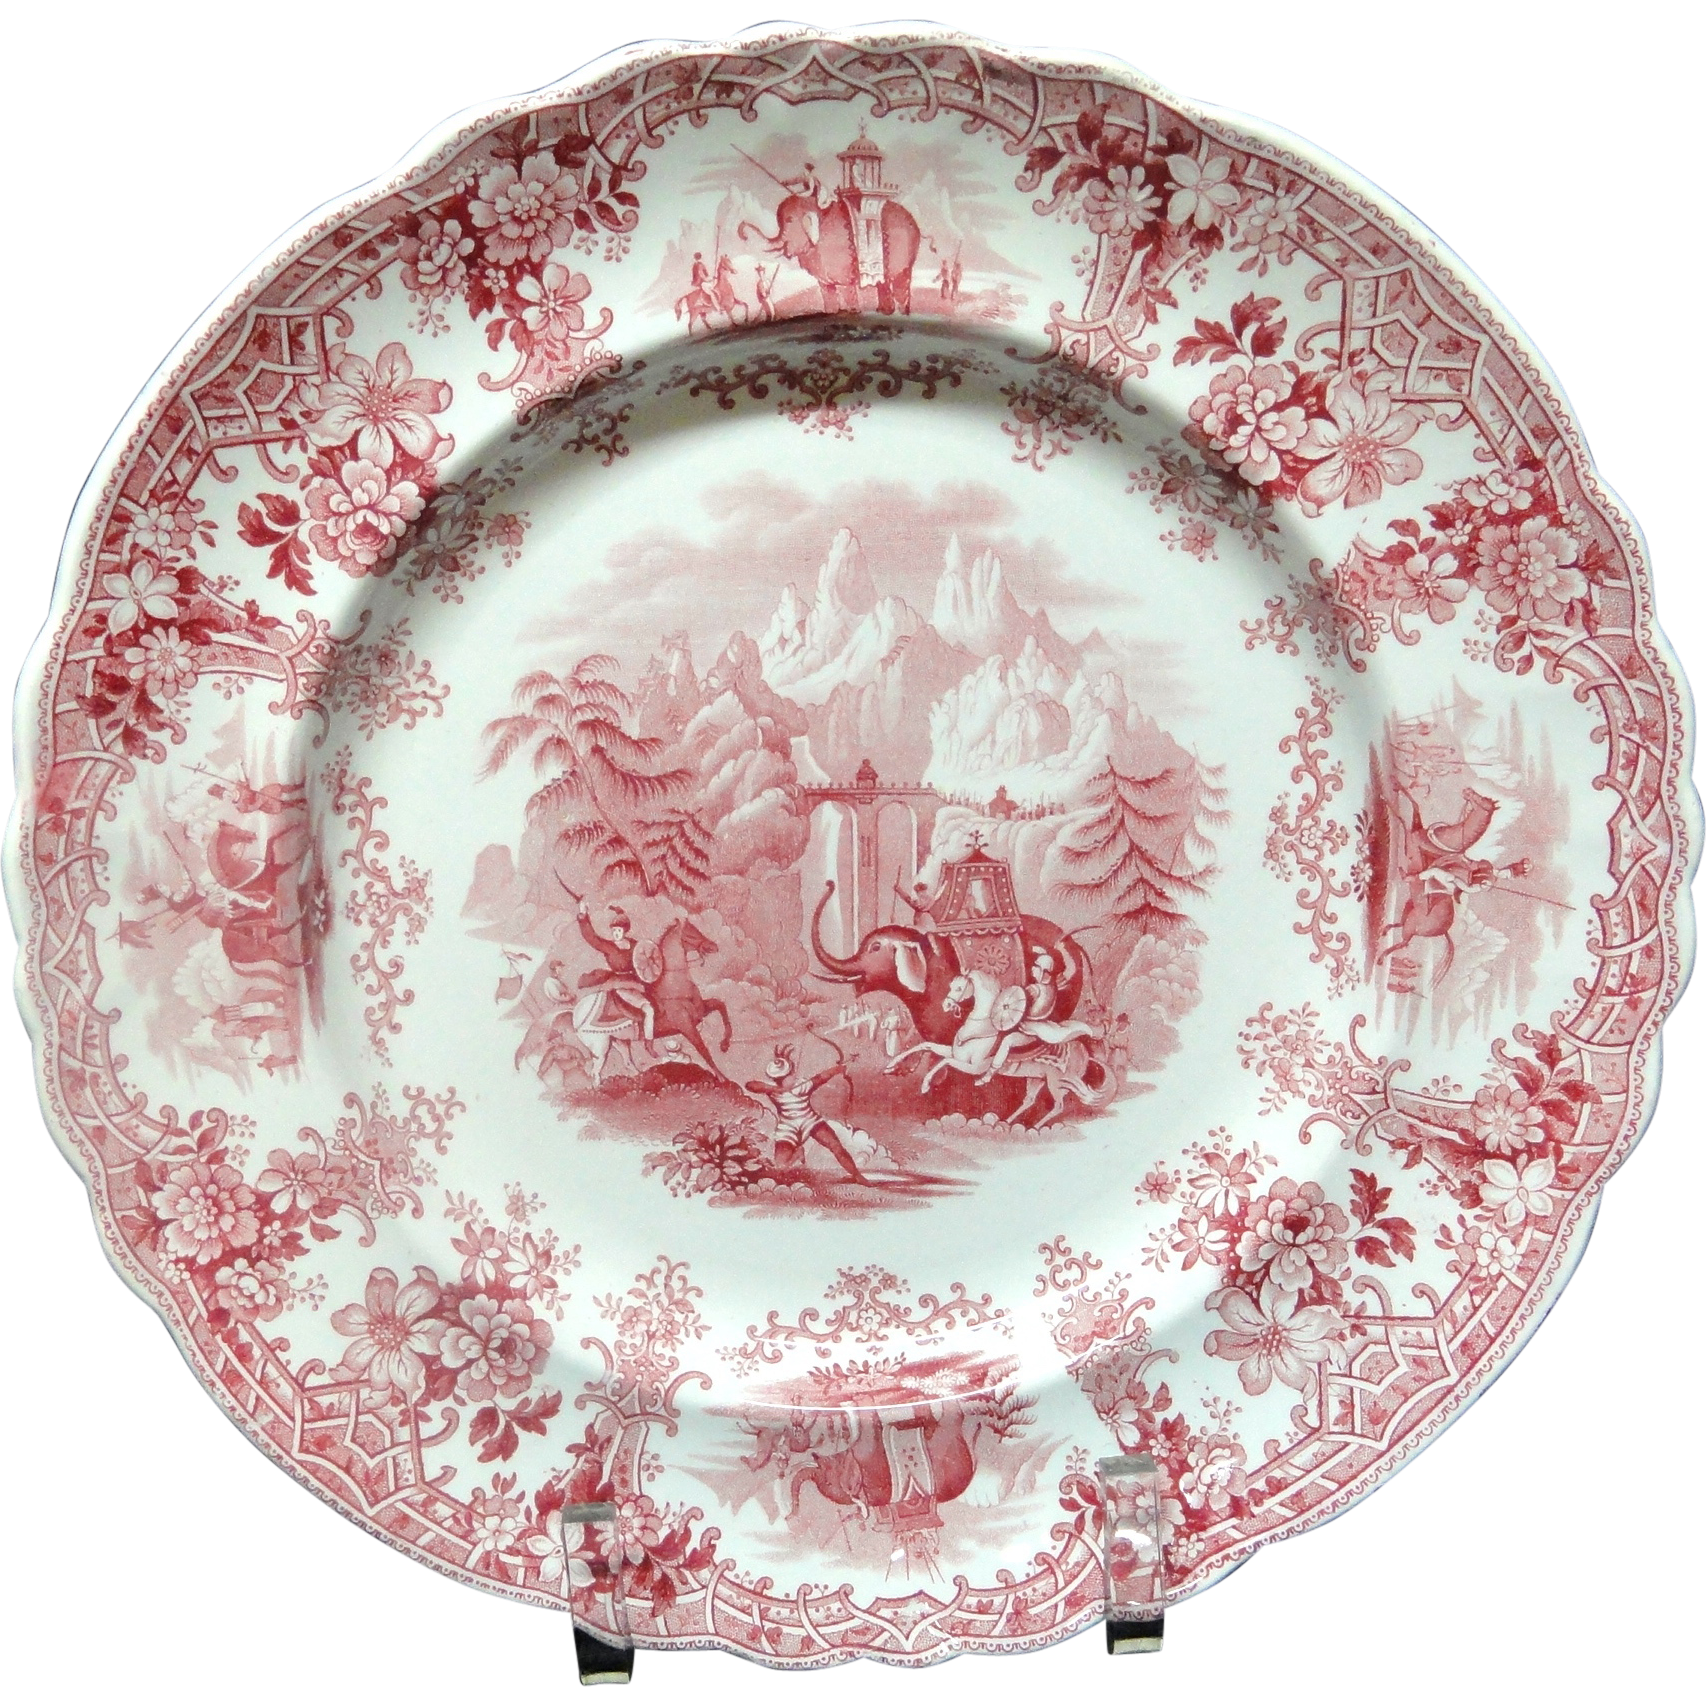 Superb Hannibal Passing the Alps Red Transferware Plate ~ 1830